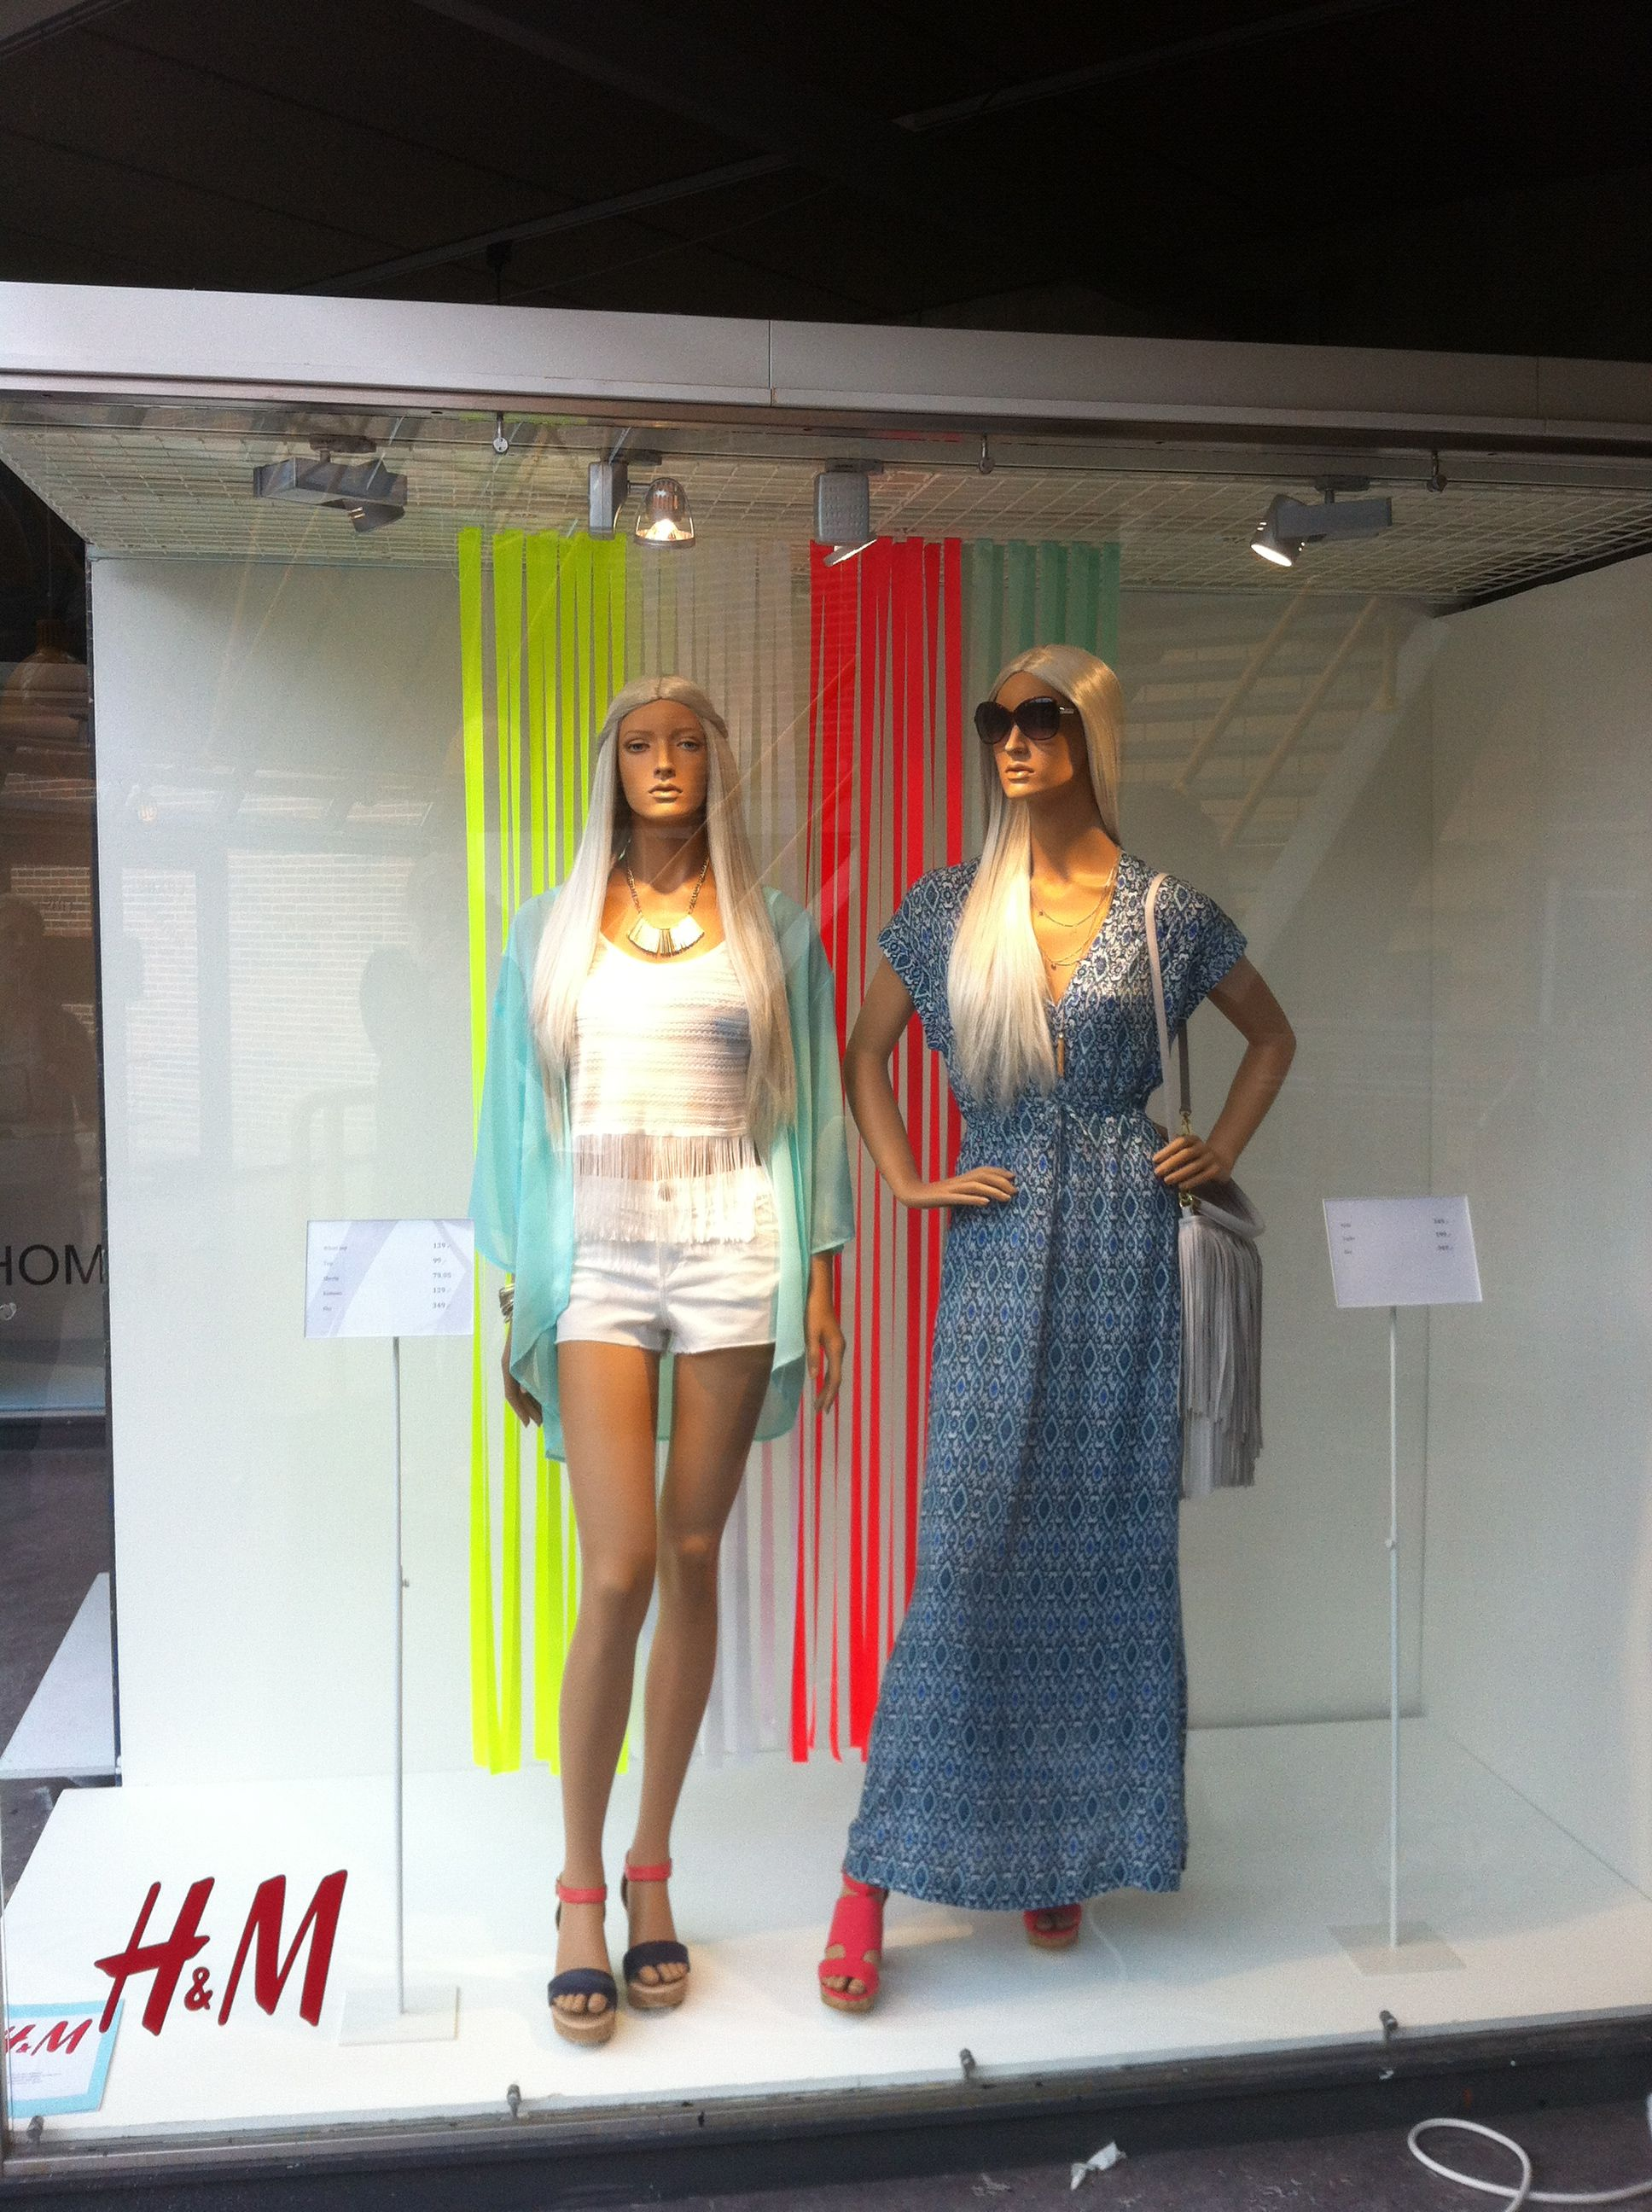 Window made by visual merchandiser Trainee at School Inspired by H&M